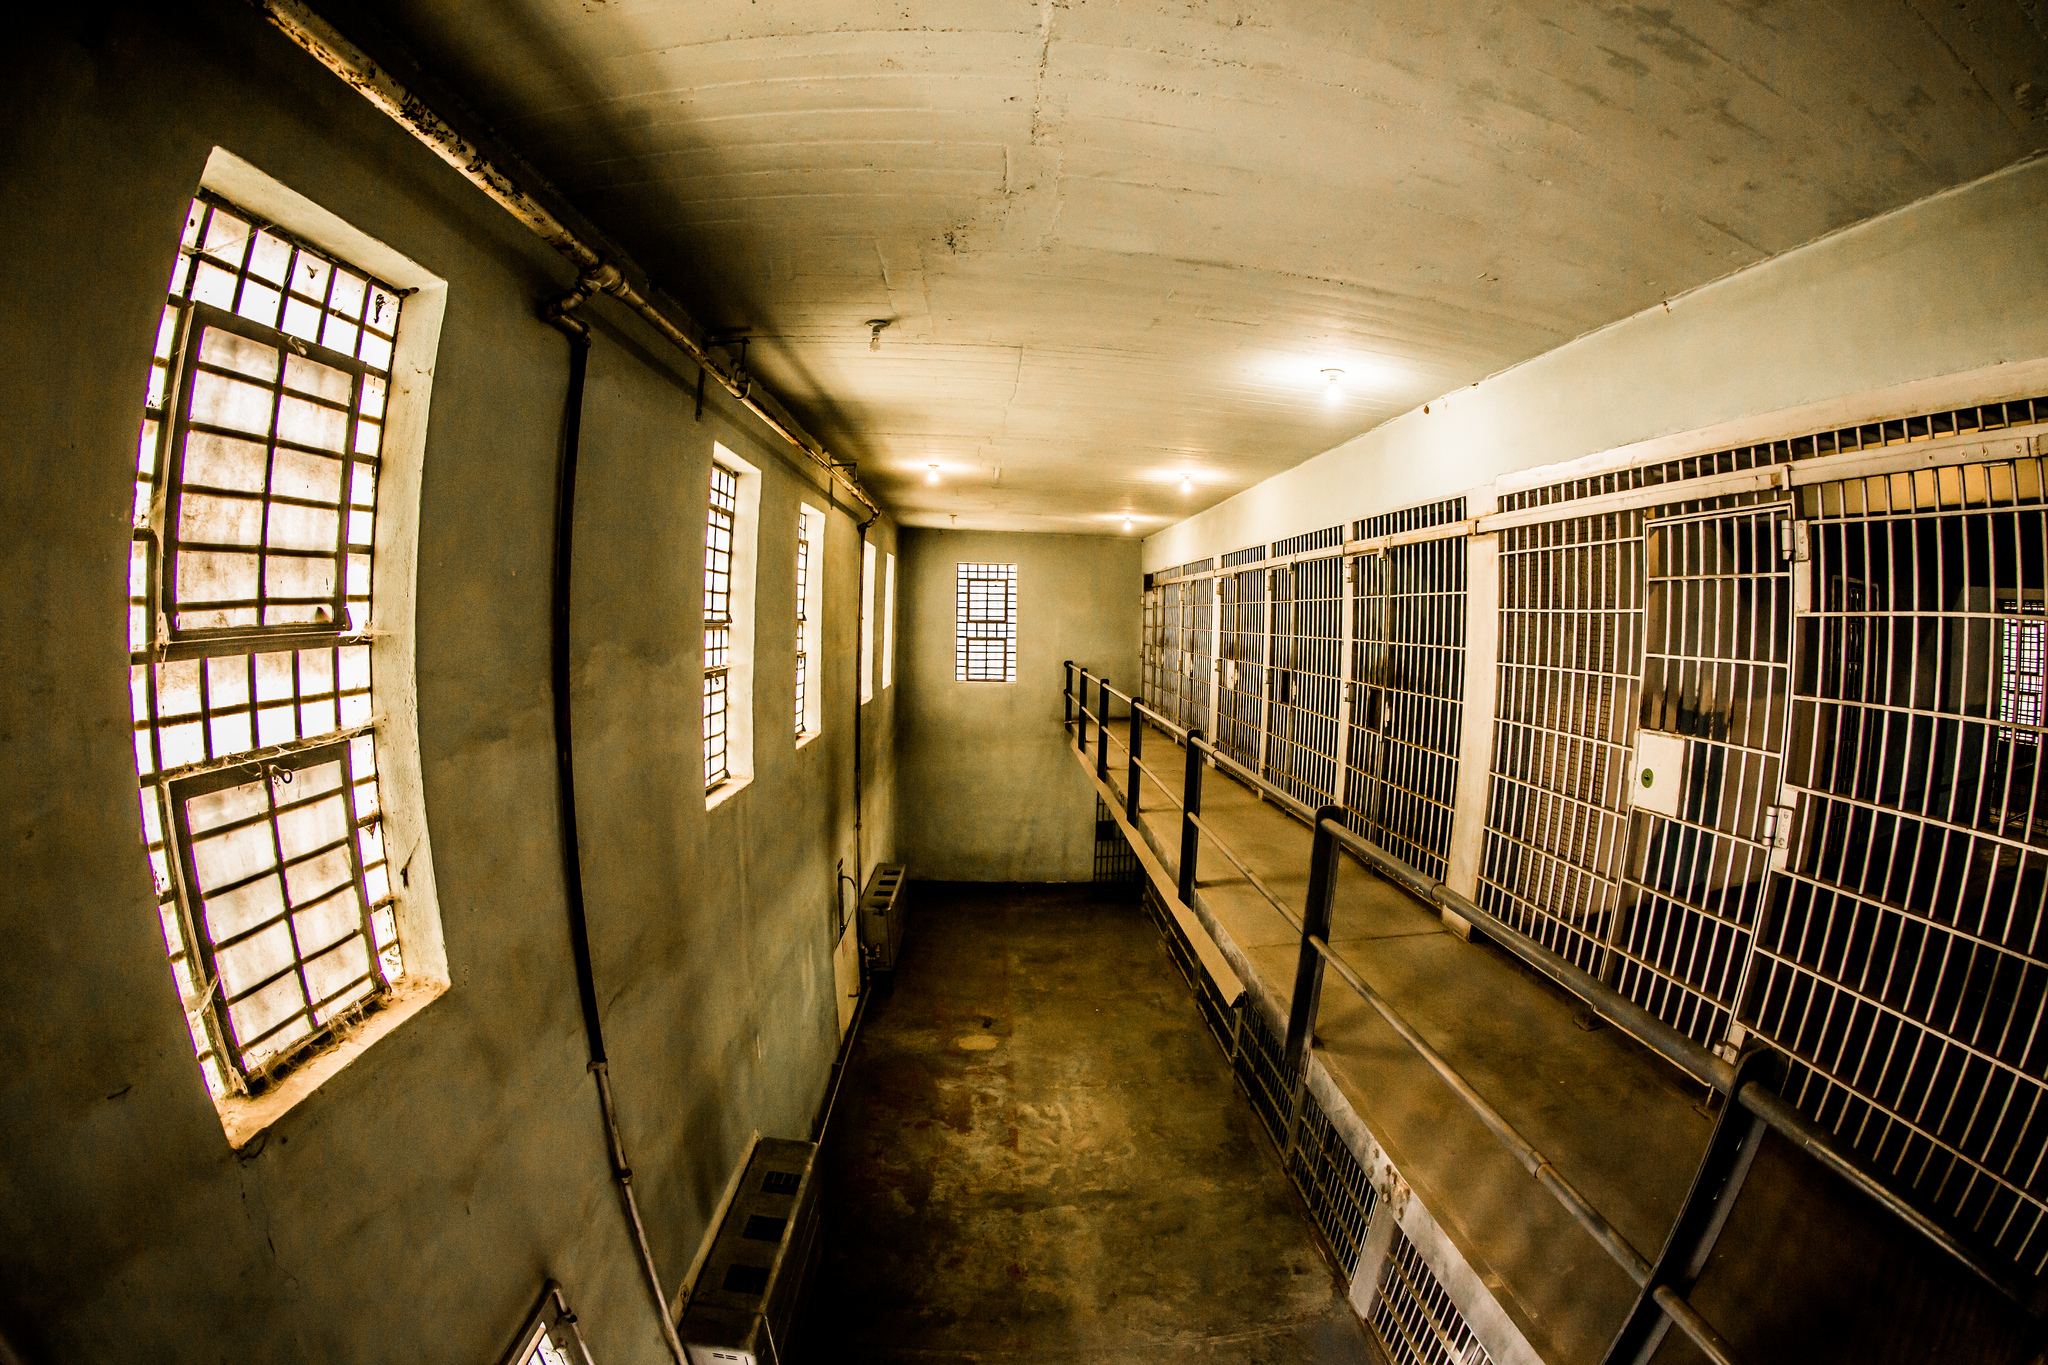 Prison: A Sacred Space in American Islam